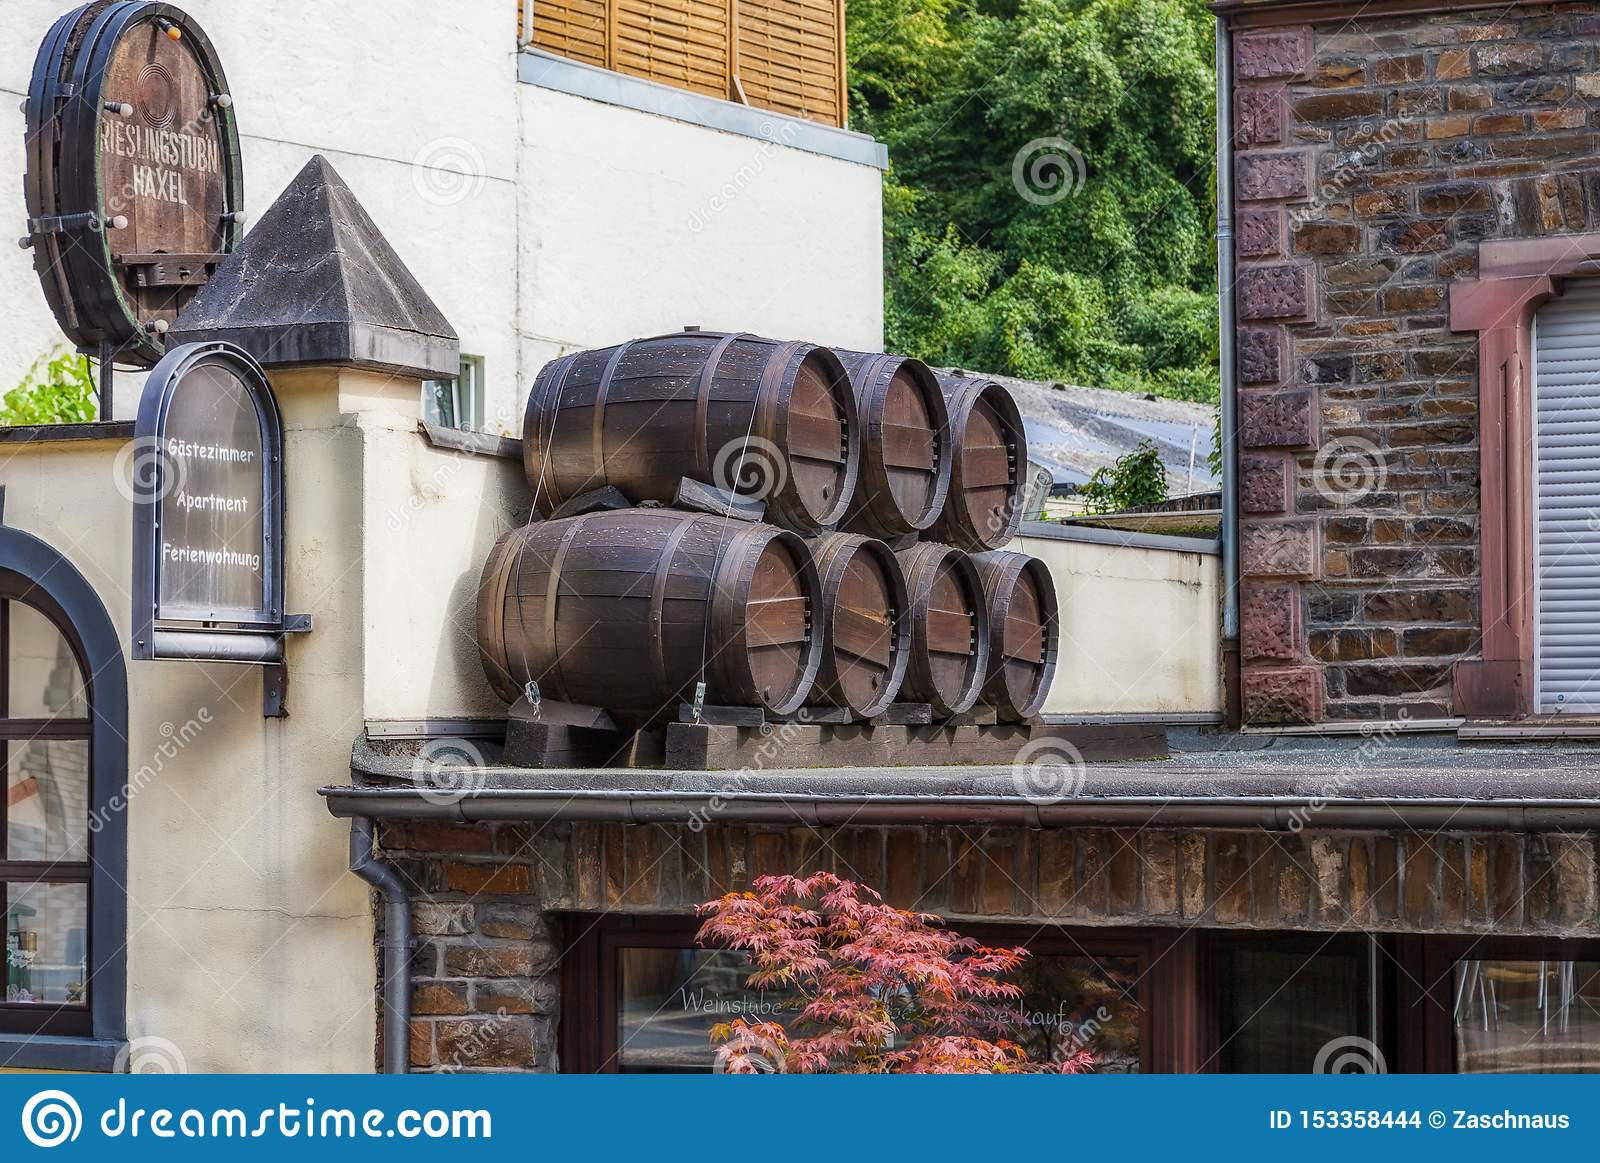 Wine Barrels On The Canopy Of A Hotel And Wine Bar In The City Of Cochem At The Mosel In Germany Editorial Stock Image Image Of Barrel Barrels 153358444